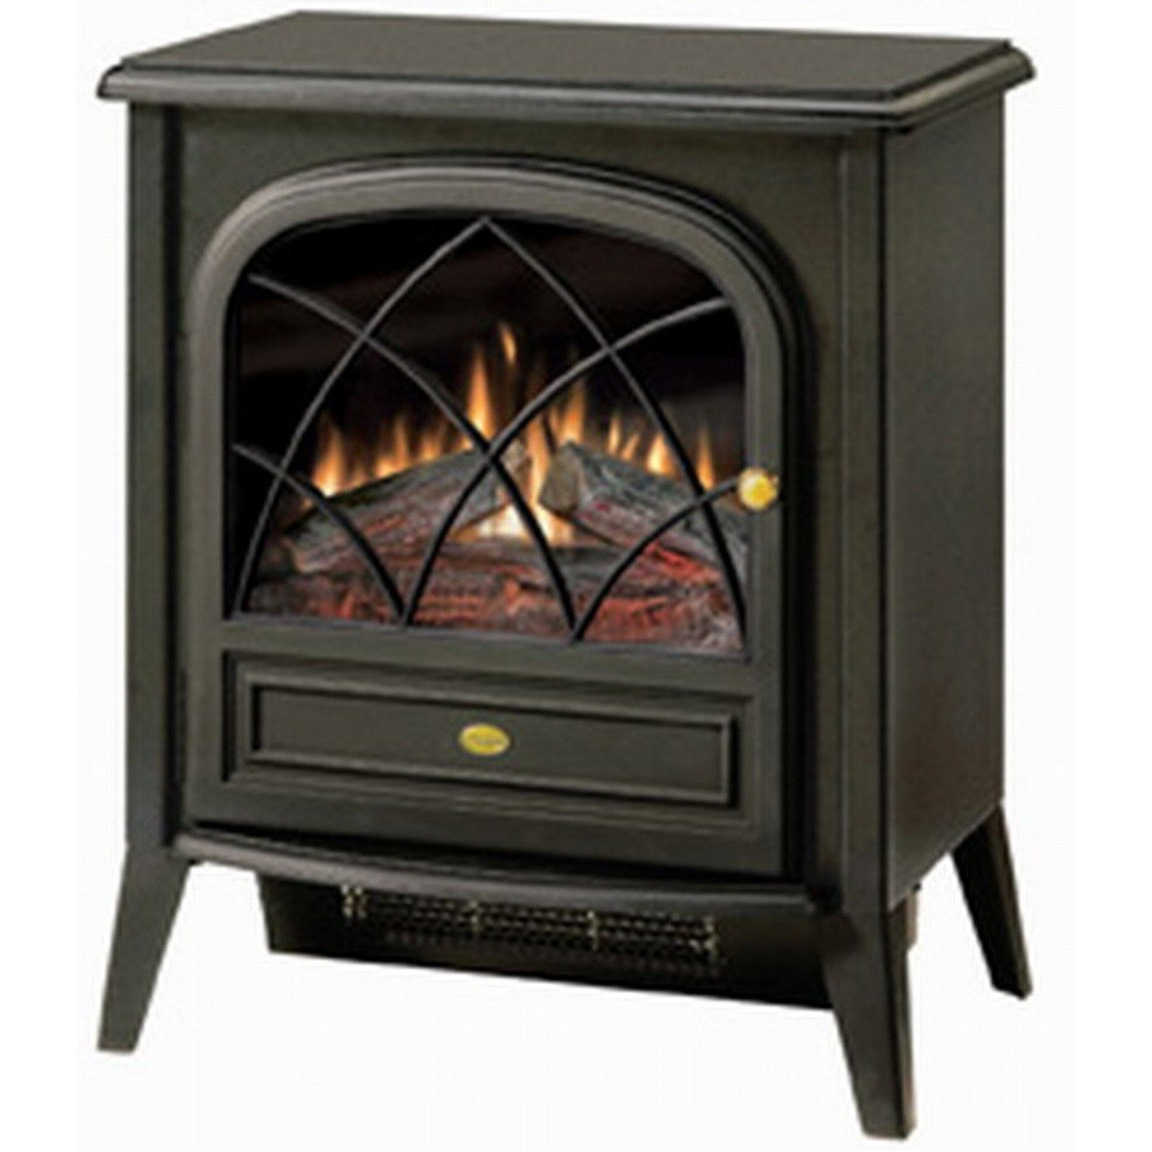 Black Compact Stove Style Electric Fireplace Space Heater with 3D Flame, DCES16801 :  This Black Compact Stove Style Electric Fireplace Space Heater with 3D Flame delivers a traditional appearance and soothing flame in a small package. No need to worry about chimney fires, expensive fuel and messy ashes of a real wood stove. With the CS33116A, you just place it where you want and plug it in to any standard household outlet. This makes it perfect for use in sunrooms, trailers, RVs or anywhere you need a zone heating solution. No fuss, no hassle, just safe, clean and green operation. The CS3311's traditional aura is enhanced by the realistic matte black finish, opening door with gothic arched frets, and subtle metallic highlights. The patented Dimplex flame effect contributes even more to the authentic appearance. You will appreciate the CS3311's powerful heater on chilly nights; it can warm a room up to 400 sq. ft. and stays cool to the touch so people and pets stay safe. On warm evenings, you can even to choose to relax in front of the flickering flames with the heater turned off and just mellow out to the glow of the fire. Flame operates with or without heat and comes with a remote control